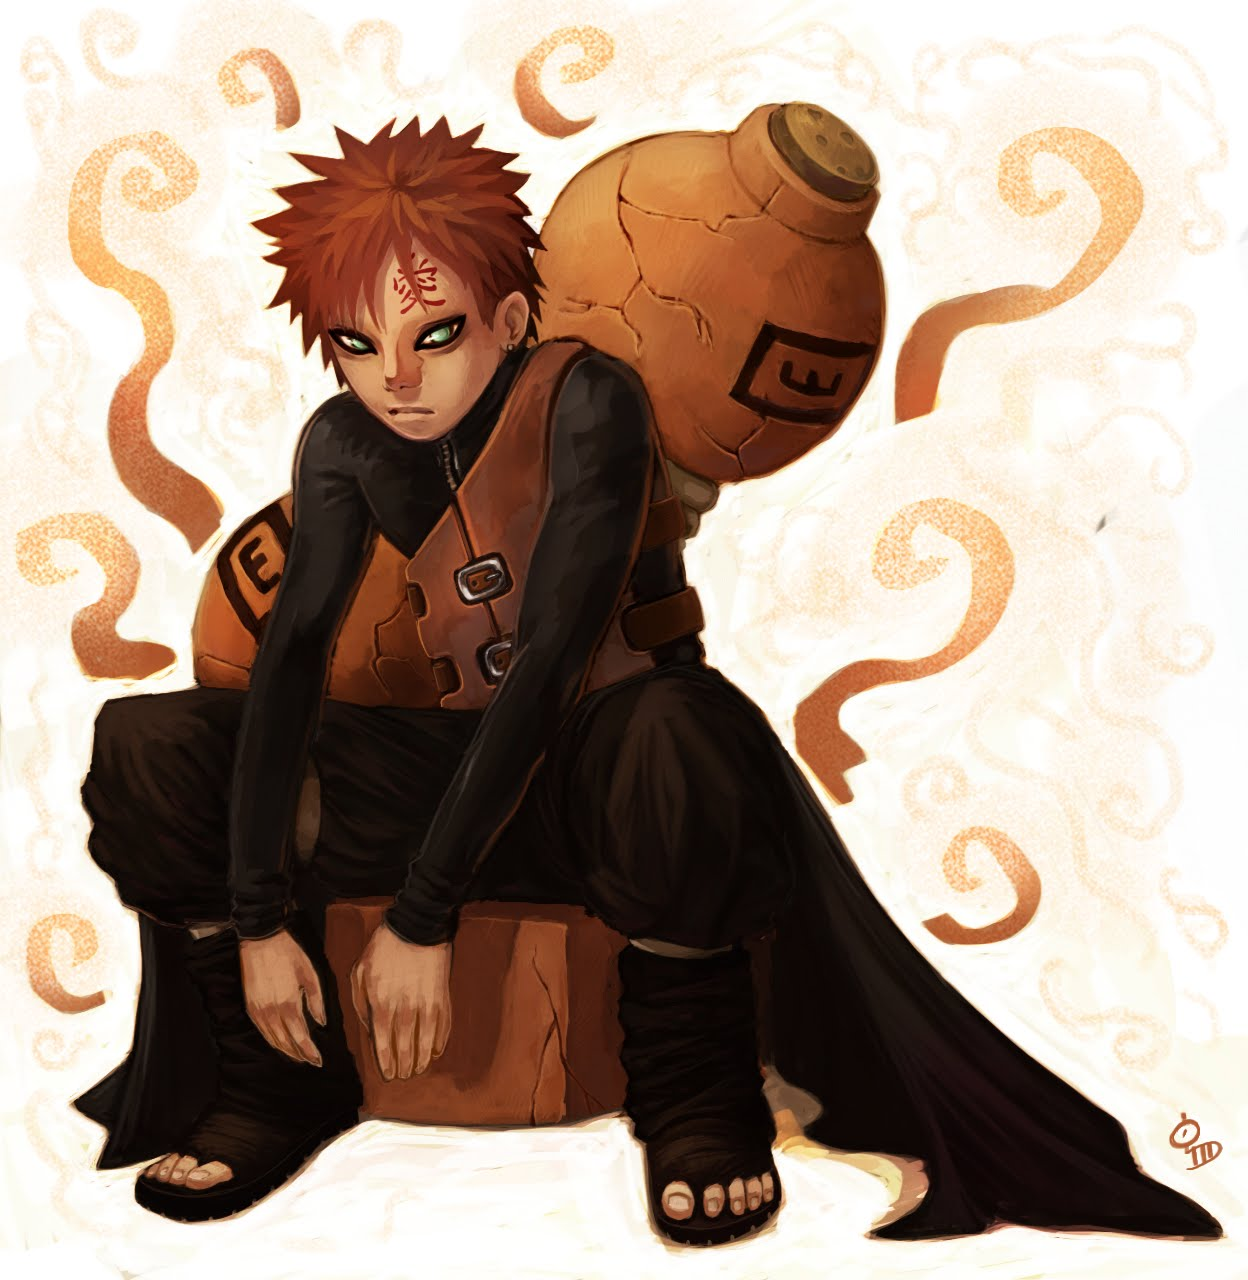 High Quality Wallpaper: Gaara Best Wallpapers